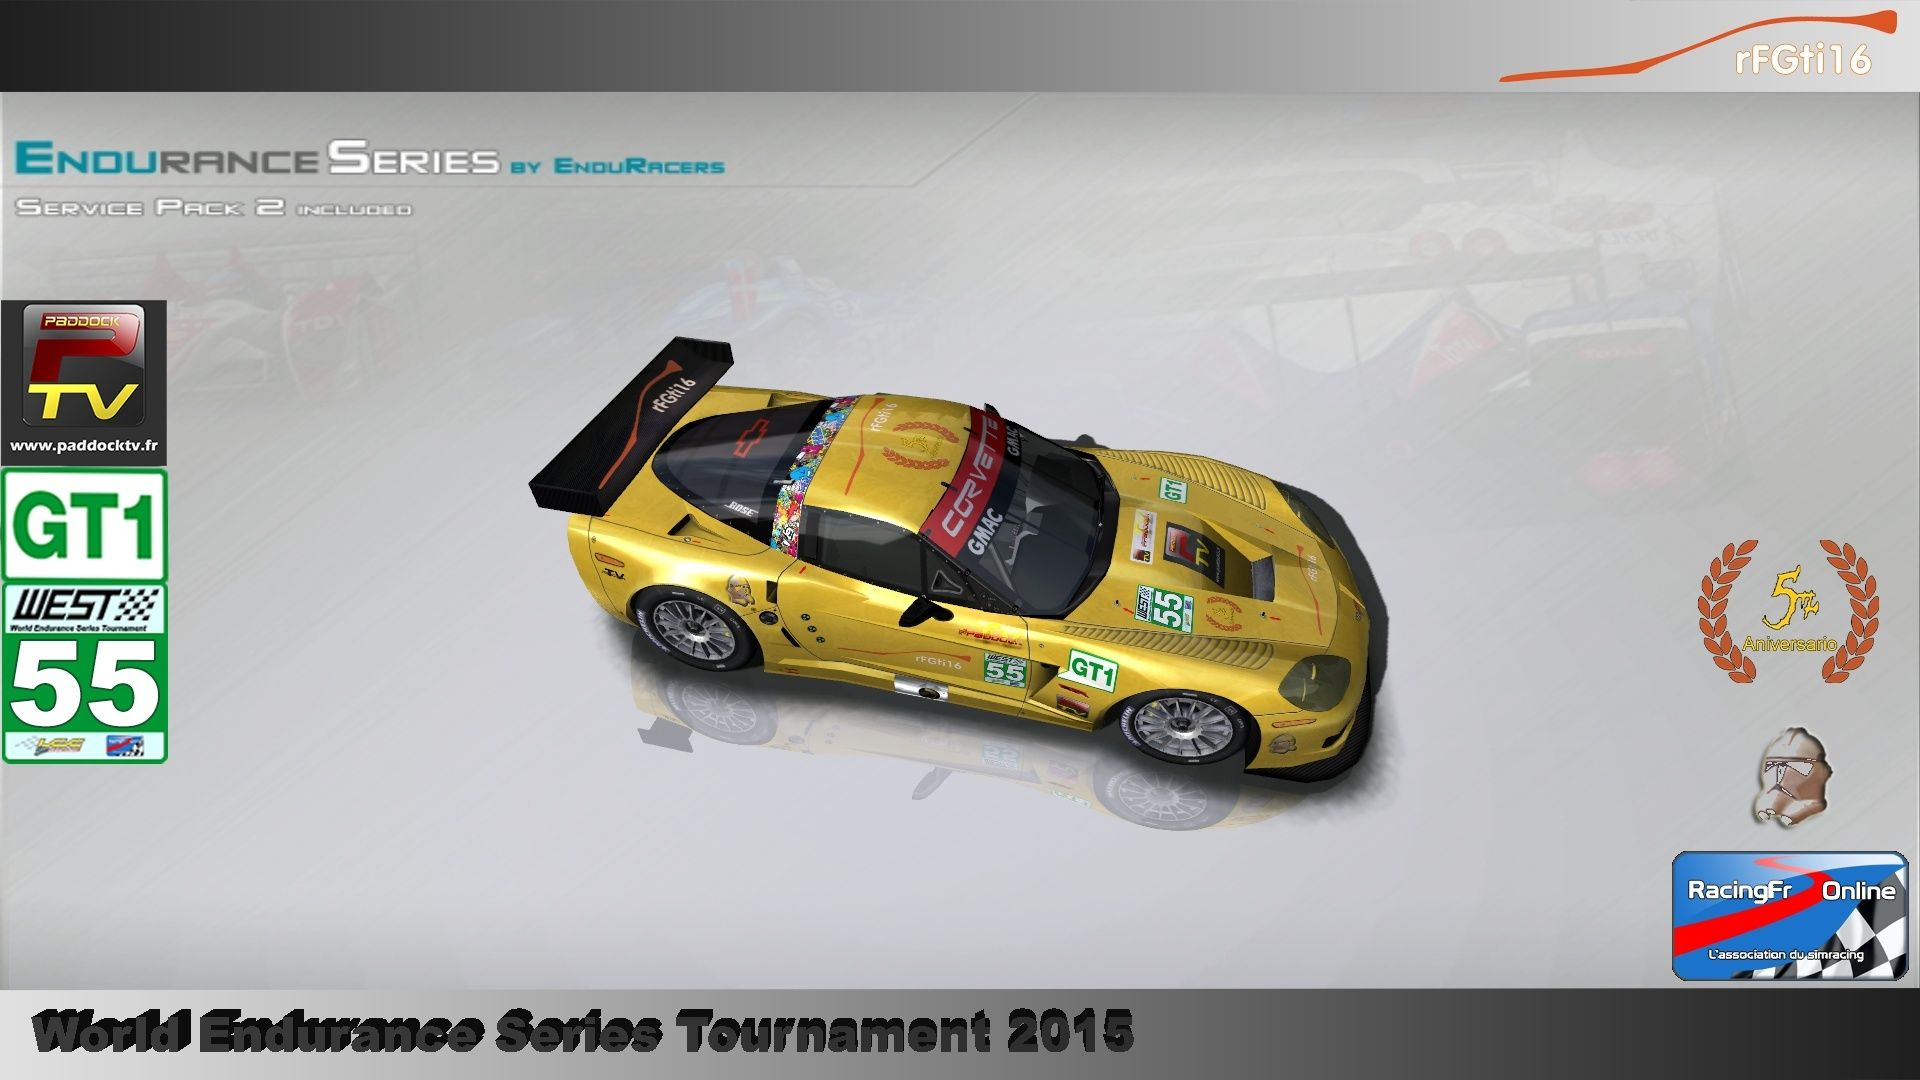 WEST 2015 Endurance Series championship P2/GT1 00610